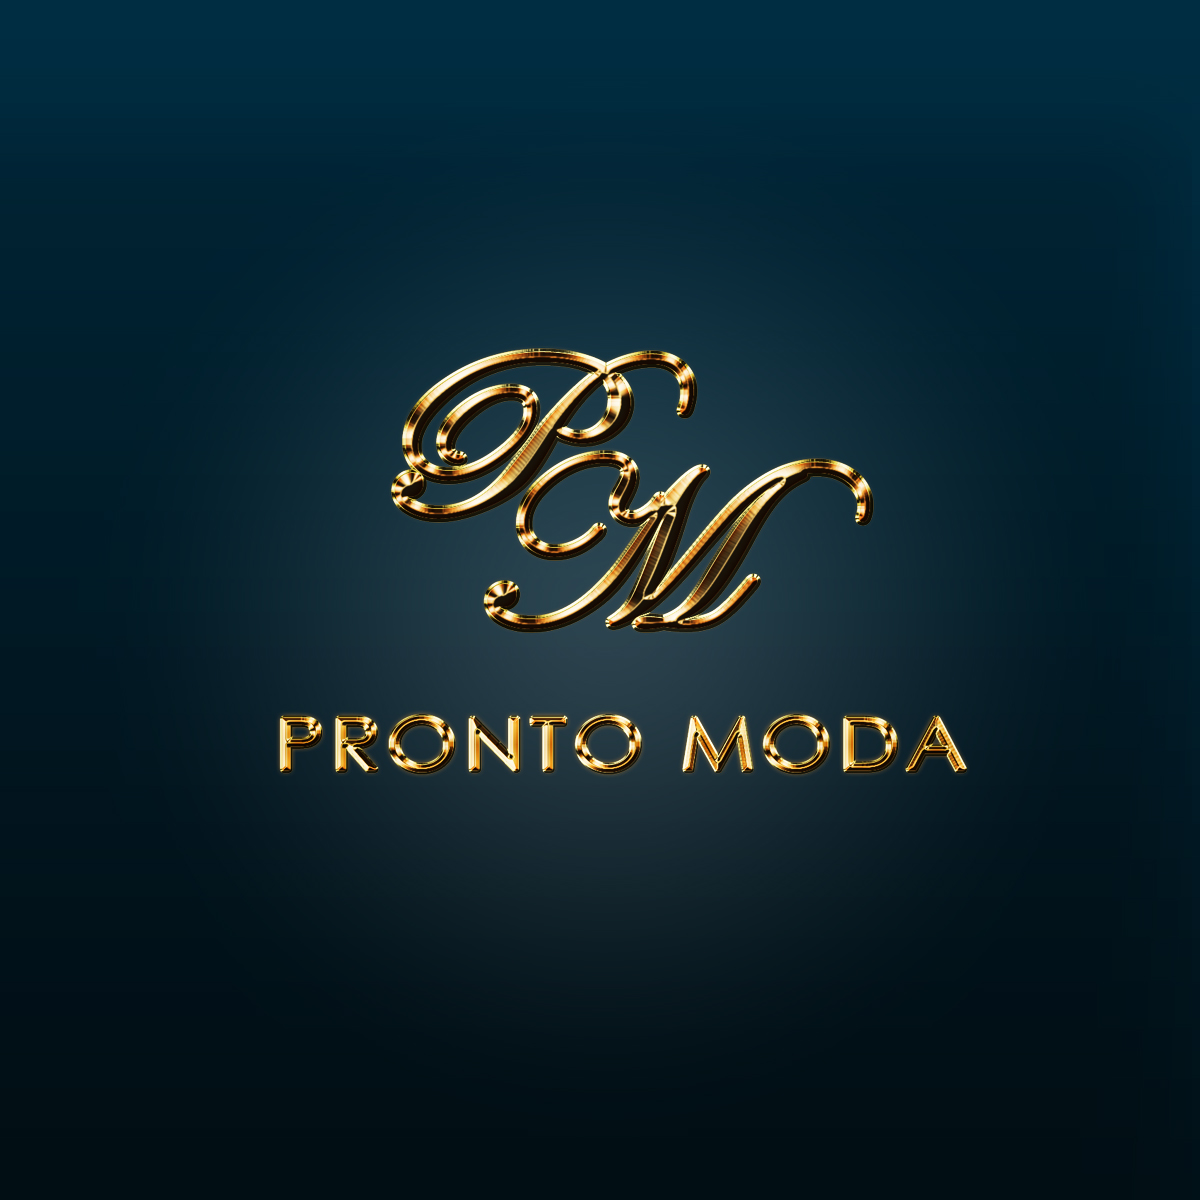 Logo Design by Private User - Entry No. 42 in the Logo Design Contest Captivating Logo Design for Pronto moda.